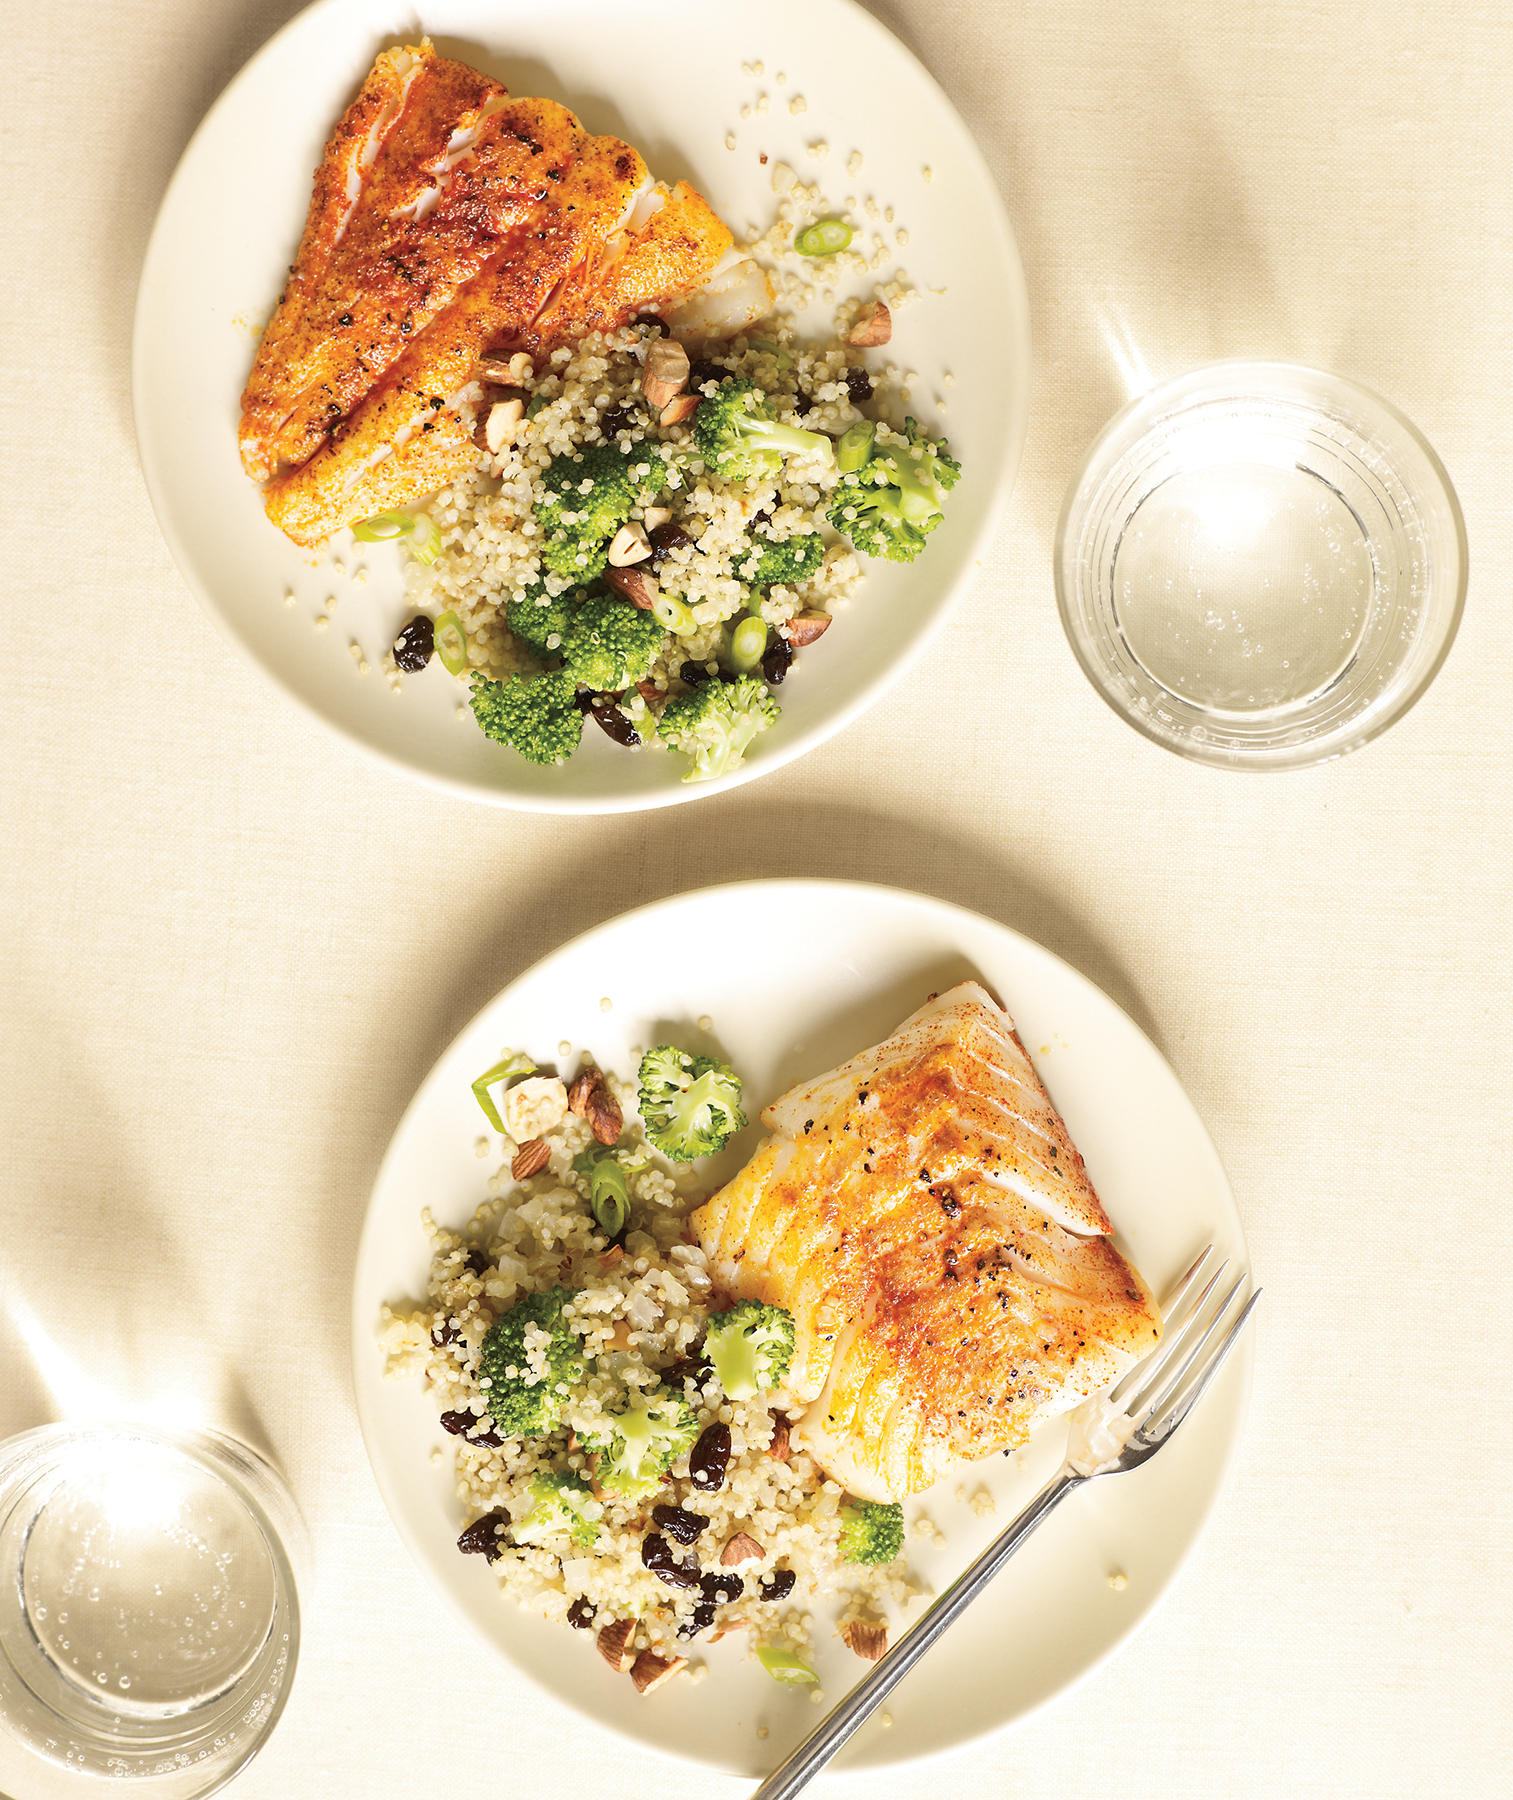 Spiced Cod With Broccoli-Quinoa Pilaf, an easy healthy recipe.